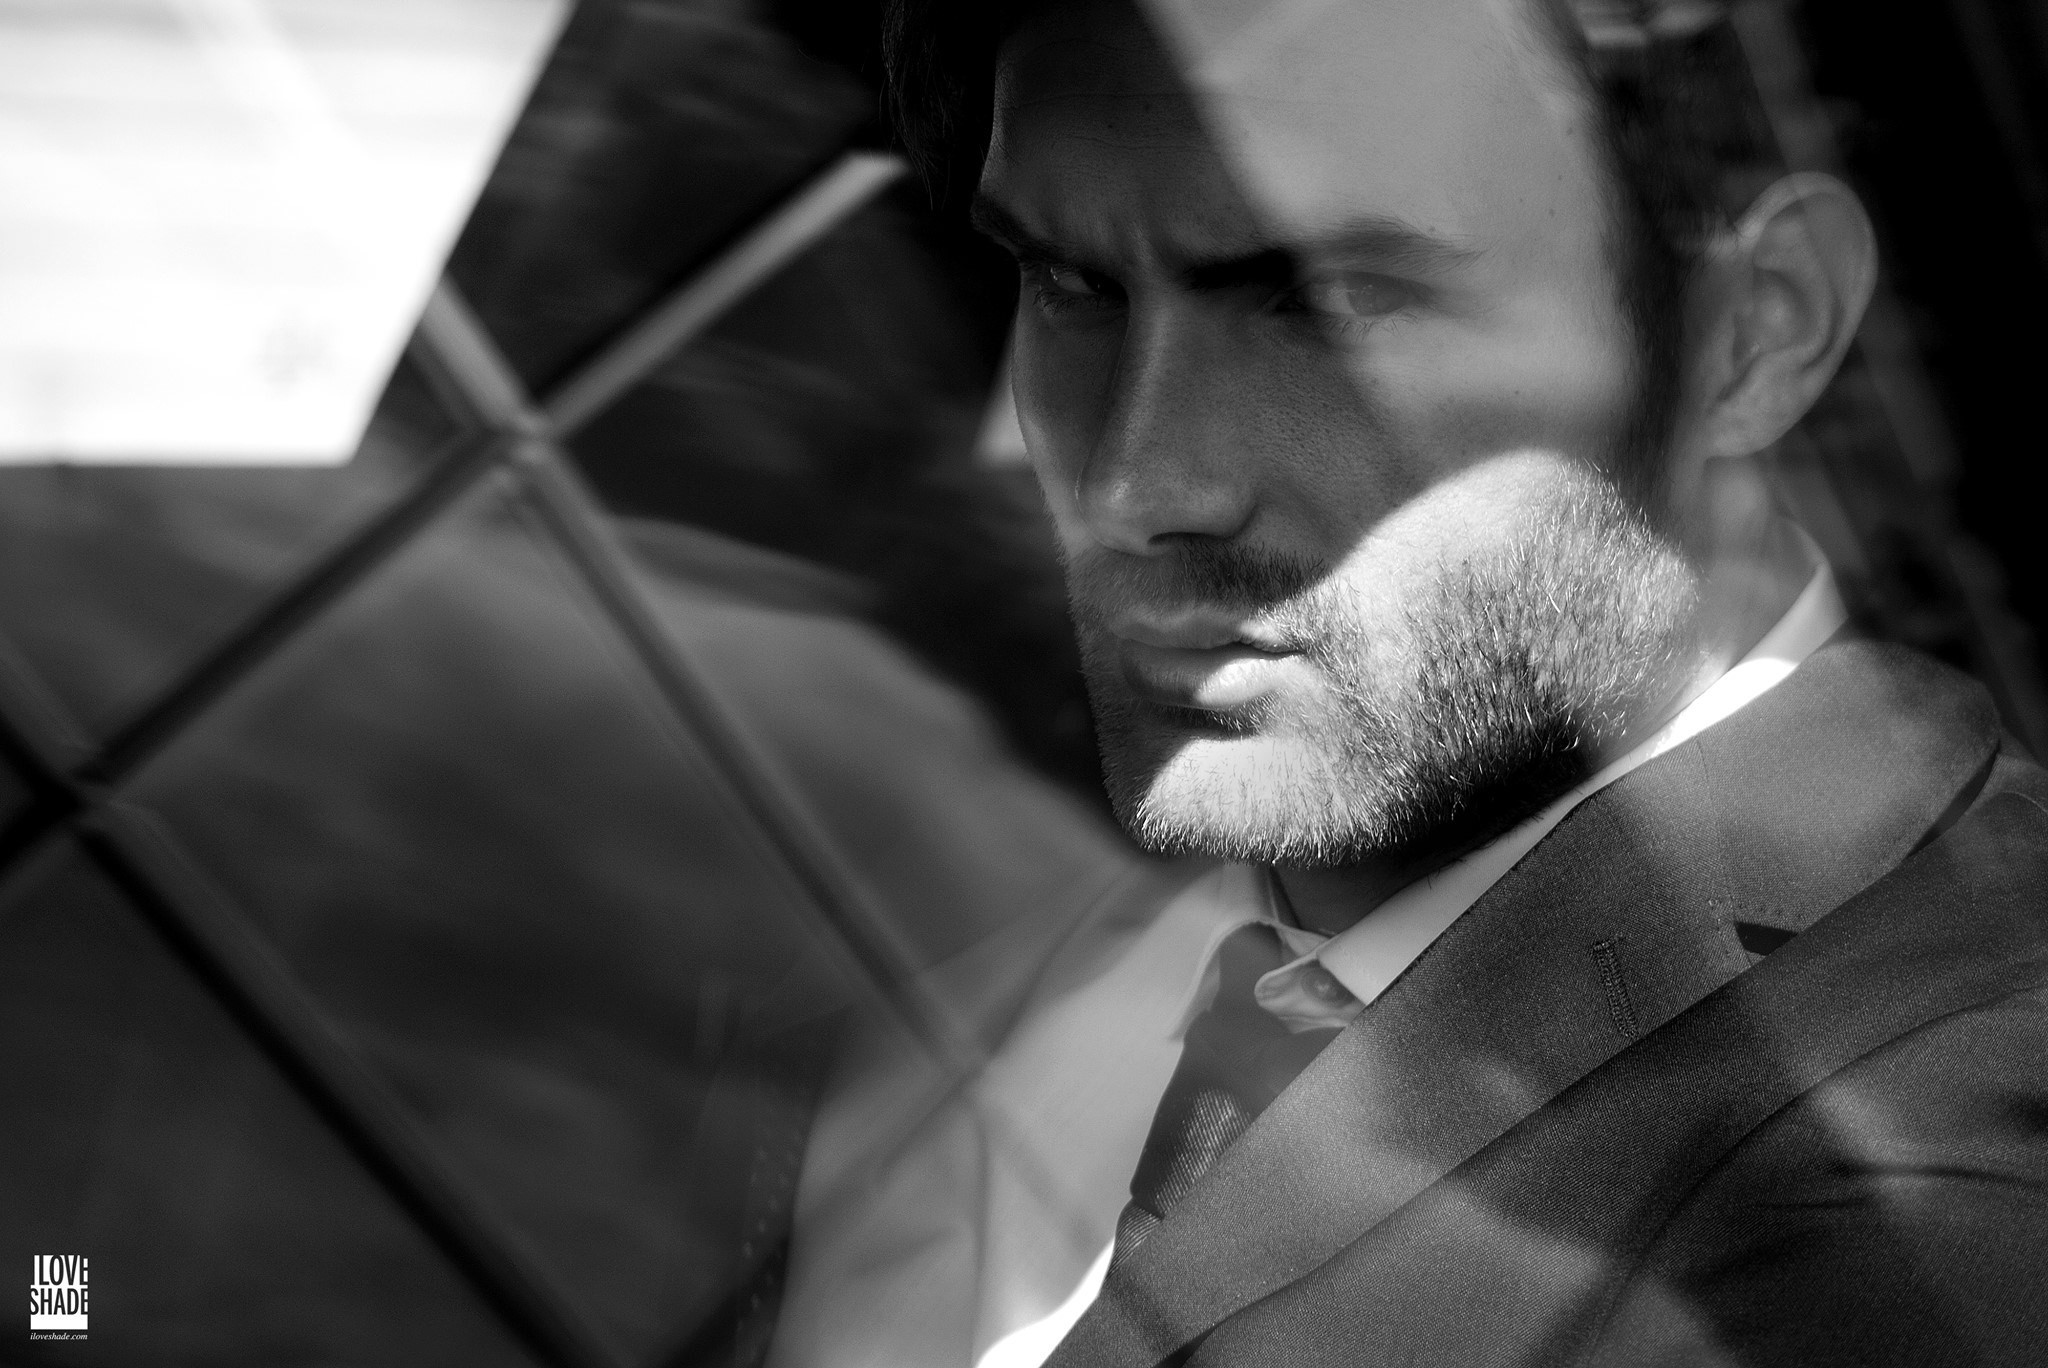 Michael Molterer by Isabella Friedmann - I lOVE SHADE